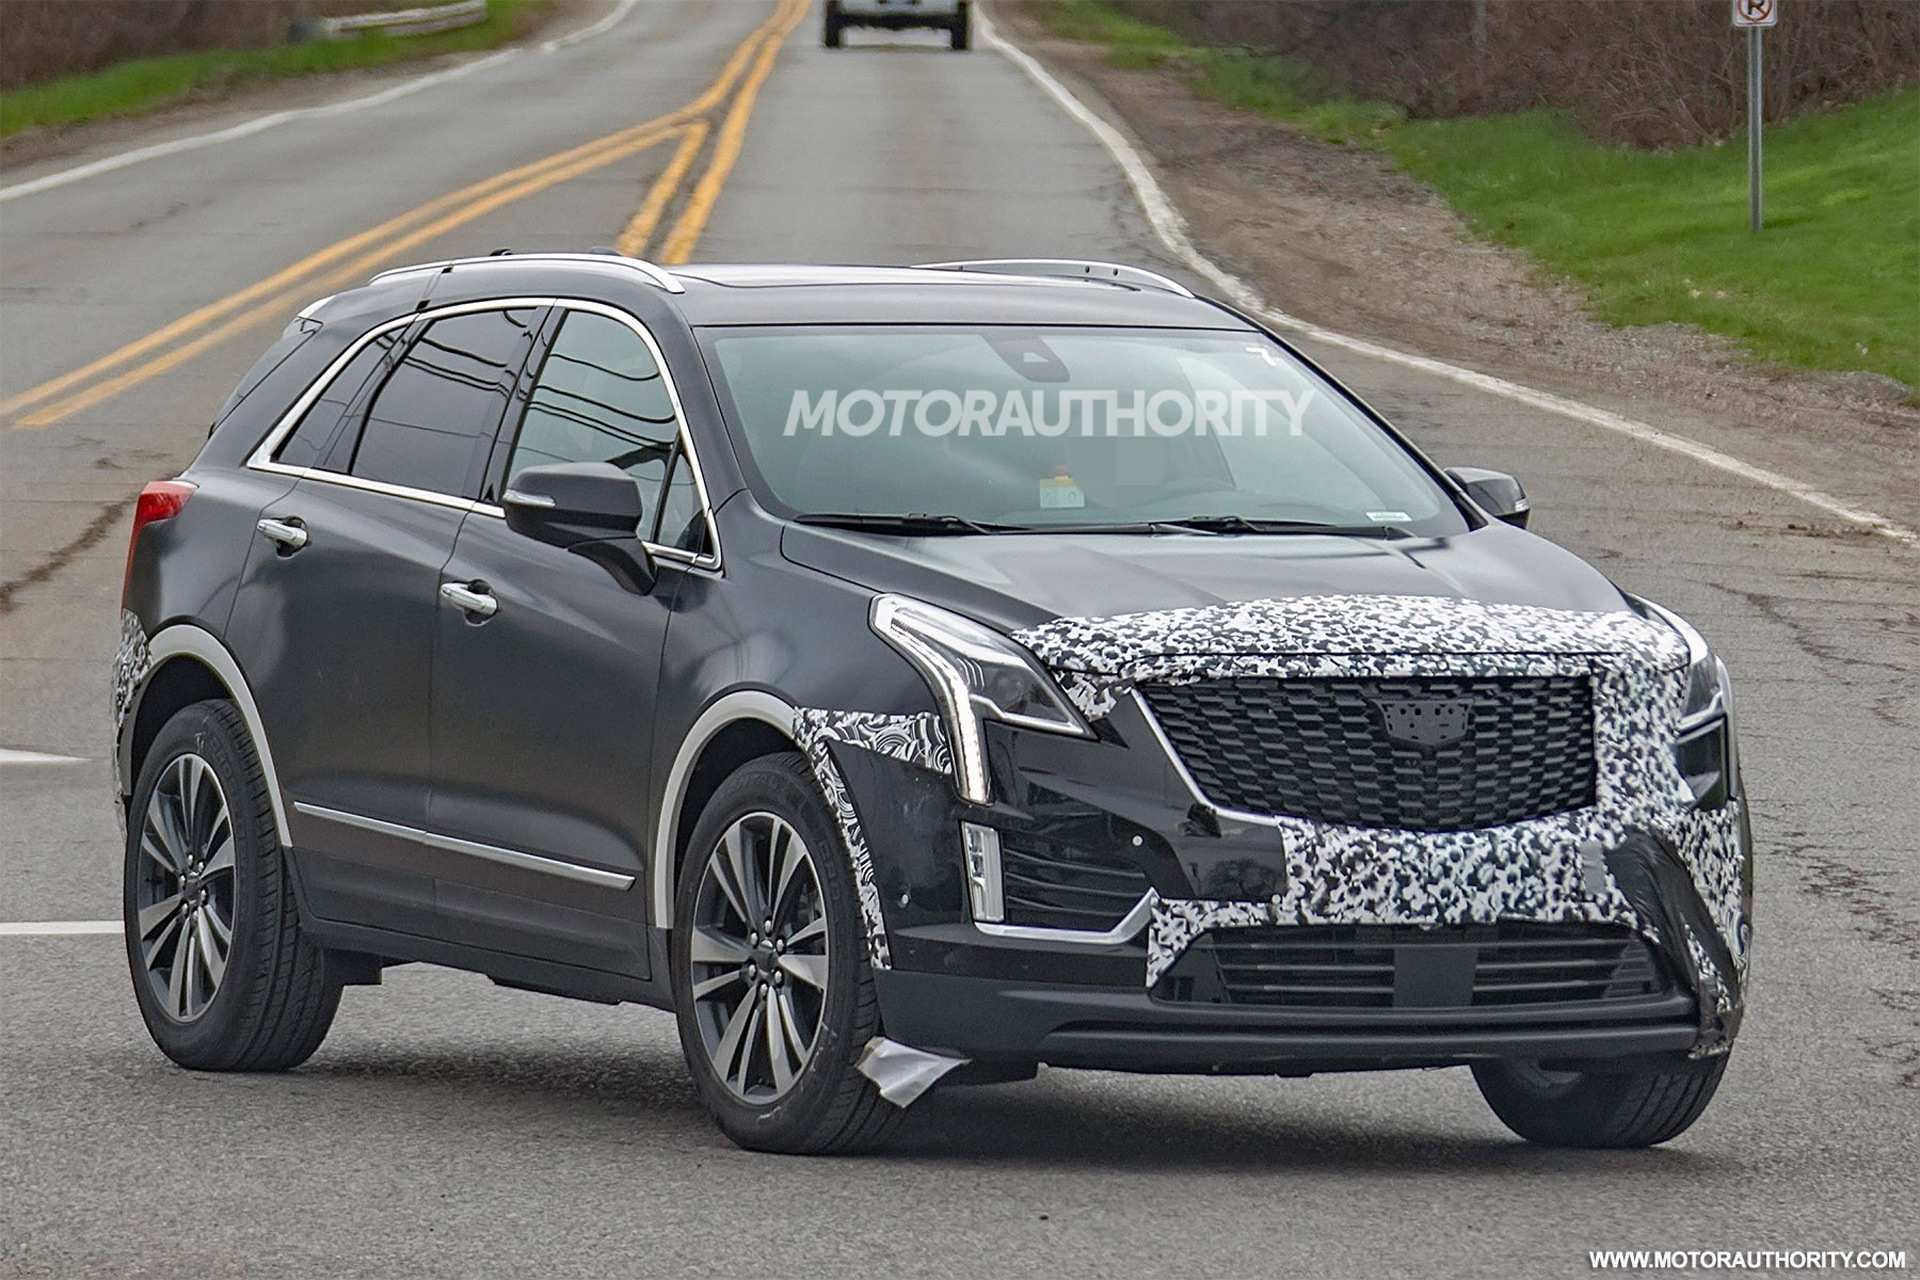 38 All New Cadillac Electric Car 2020 Prices